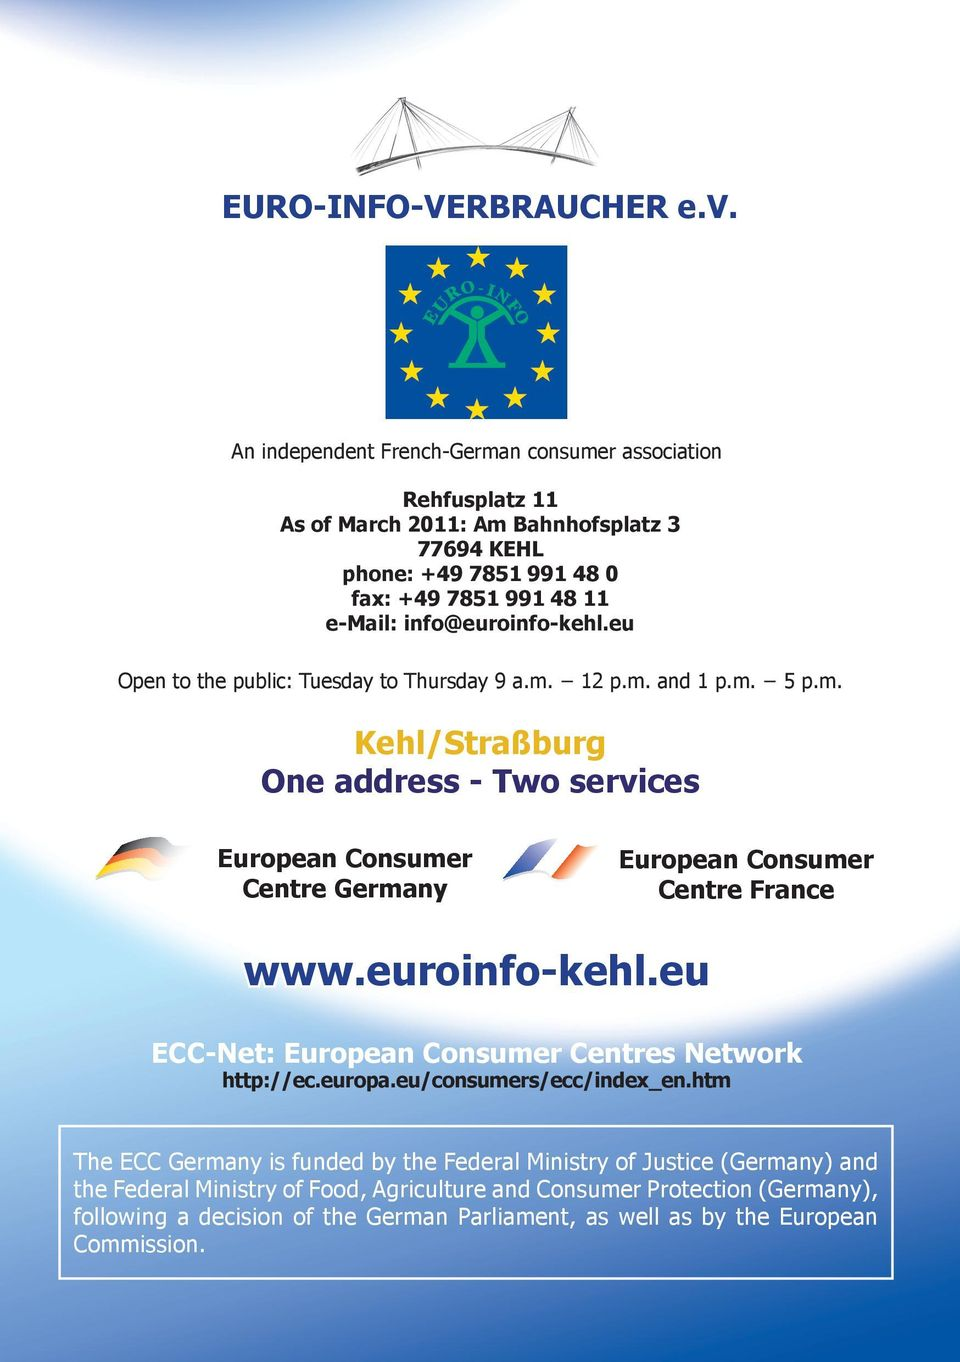 info@euroinfo-kehl.eu Open to the public: Tuesday to Thursday 9 a.m. 12 p.m. and 1 p.m. 5 p.m. Kehl/Straßburg One address - Two services European Consumer Centre Germany European Consumer Centre France www.